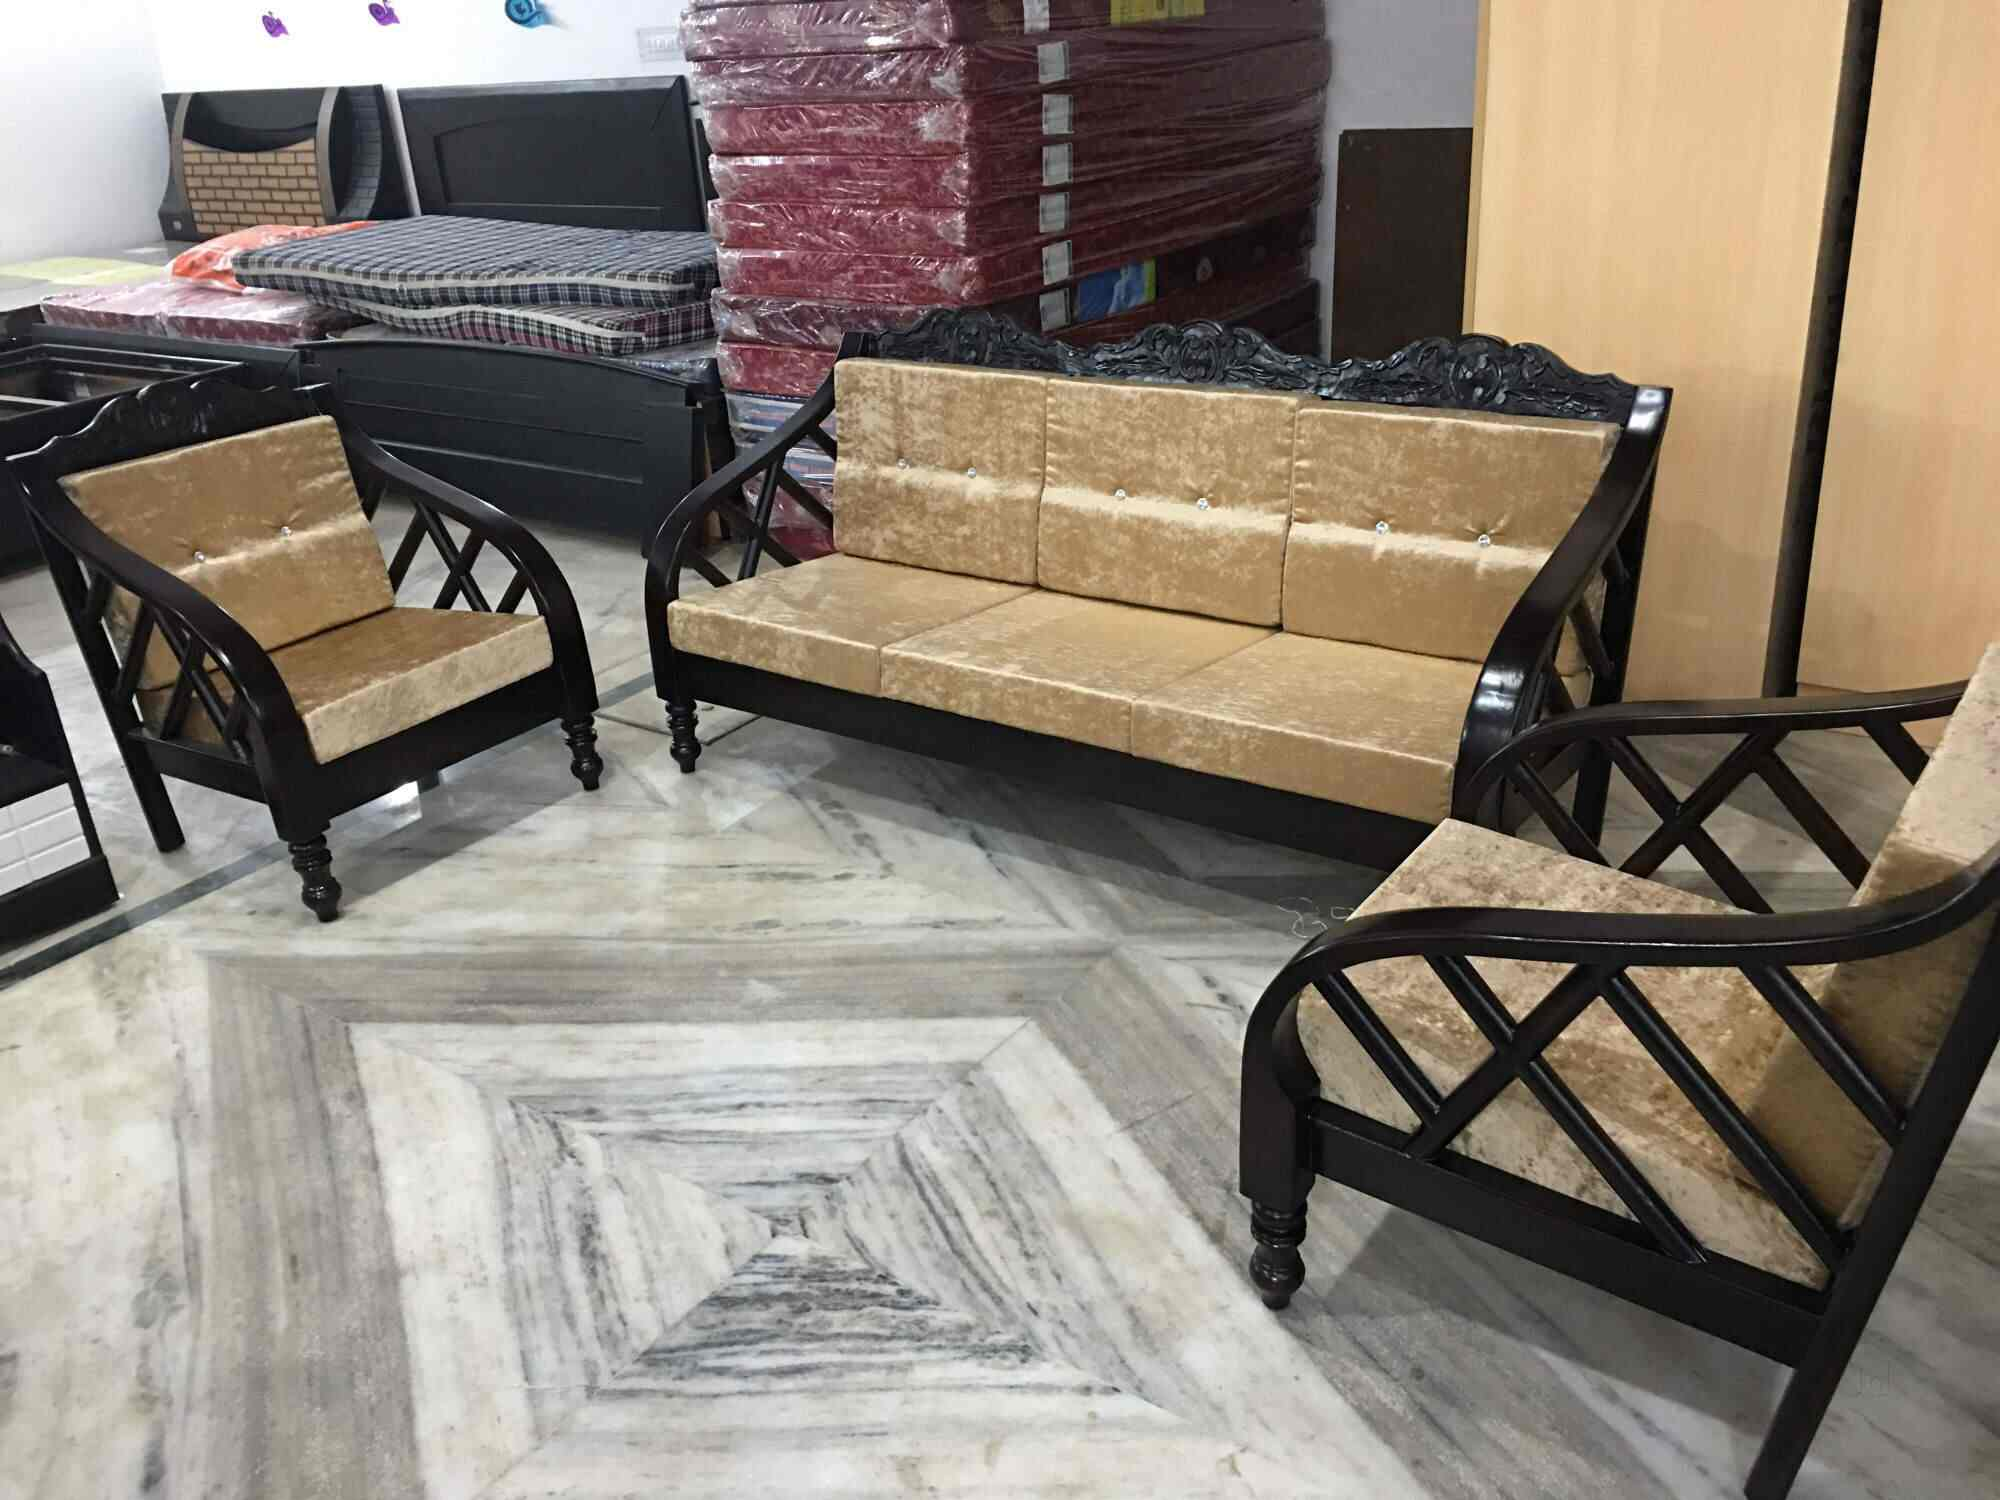 Top 50 Second Hand Furniture Dealers In Agra Best Used Furniture Dealers Justdial